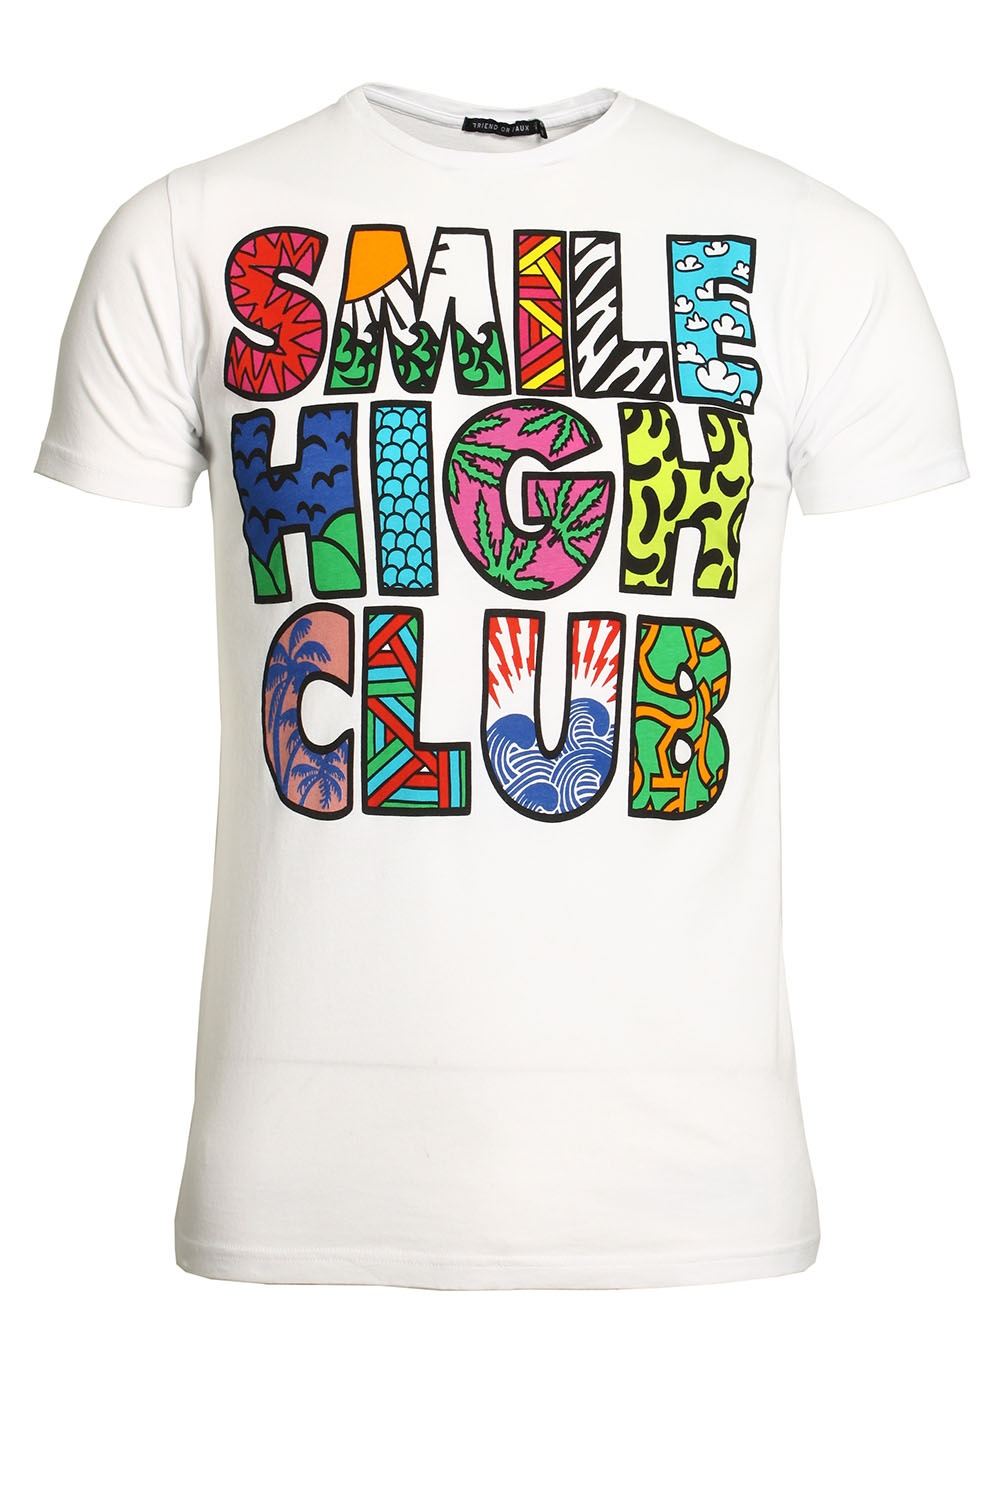 Friend or faux smile high club t shirt shop friend or for T shirts for clubs